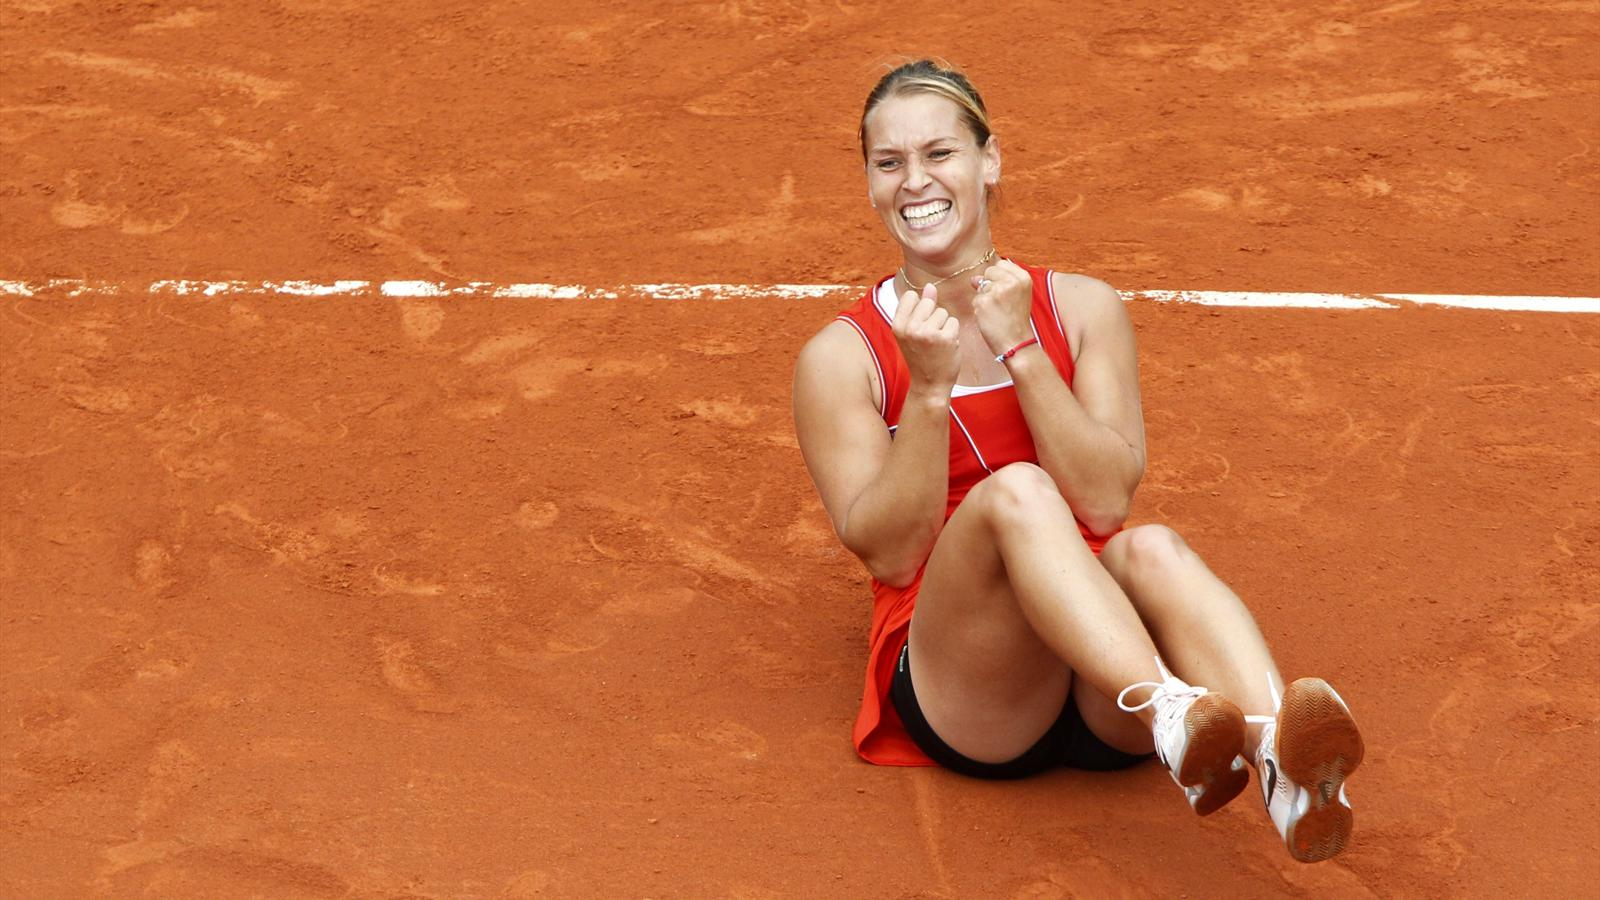 Dominika Cibulkova of Slovakia reacts after winning her match against Victoria Azarenka of Belarus during the French Open tennis tournament at the Roland Garros stadium in Paris